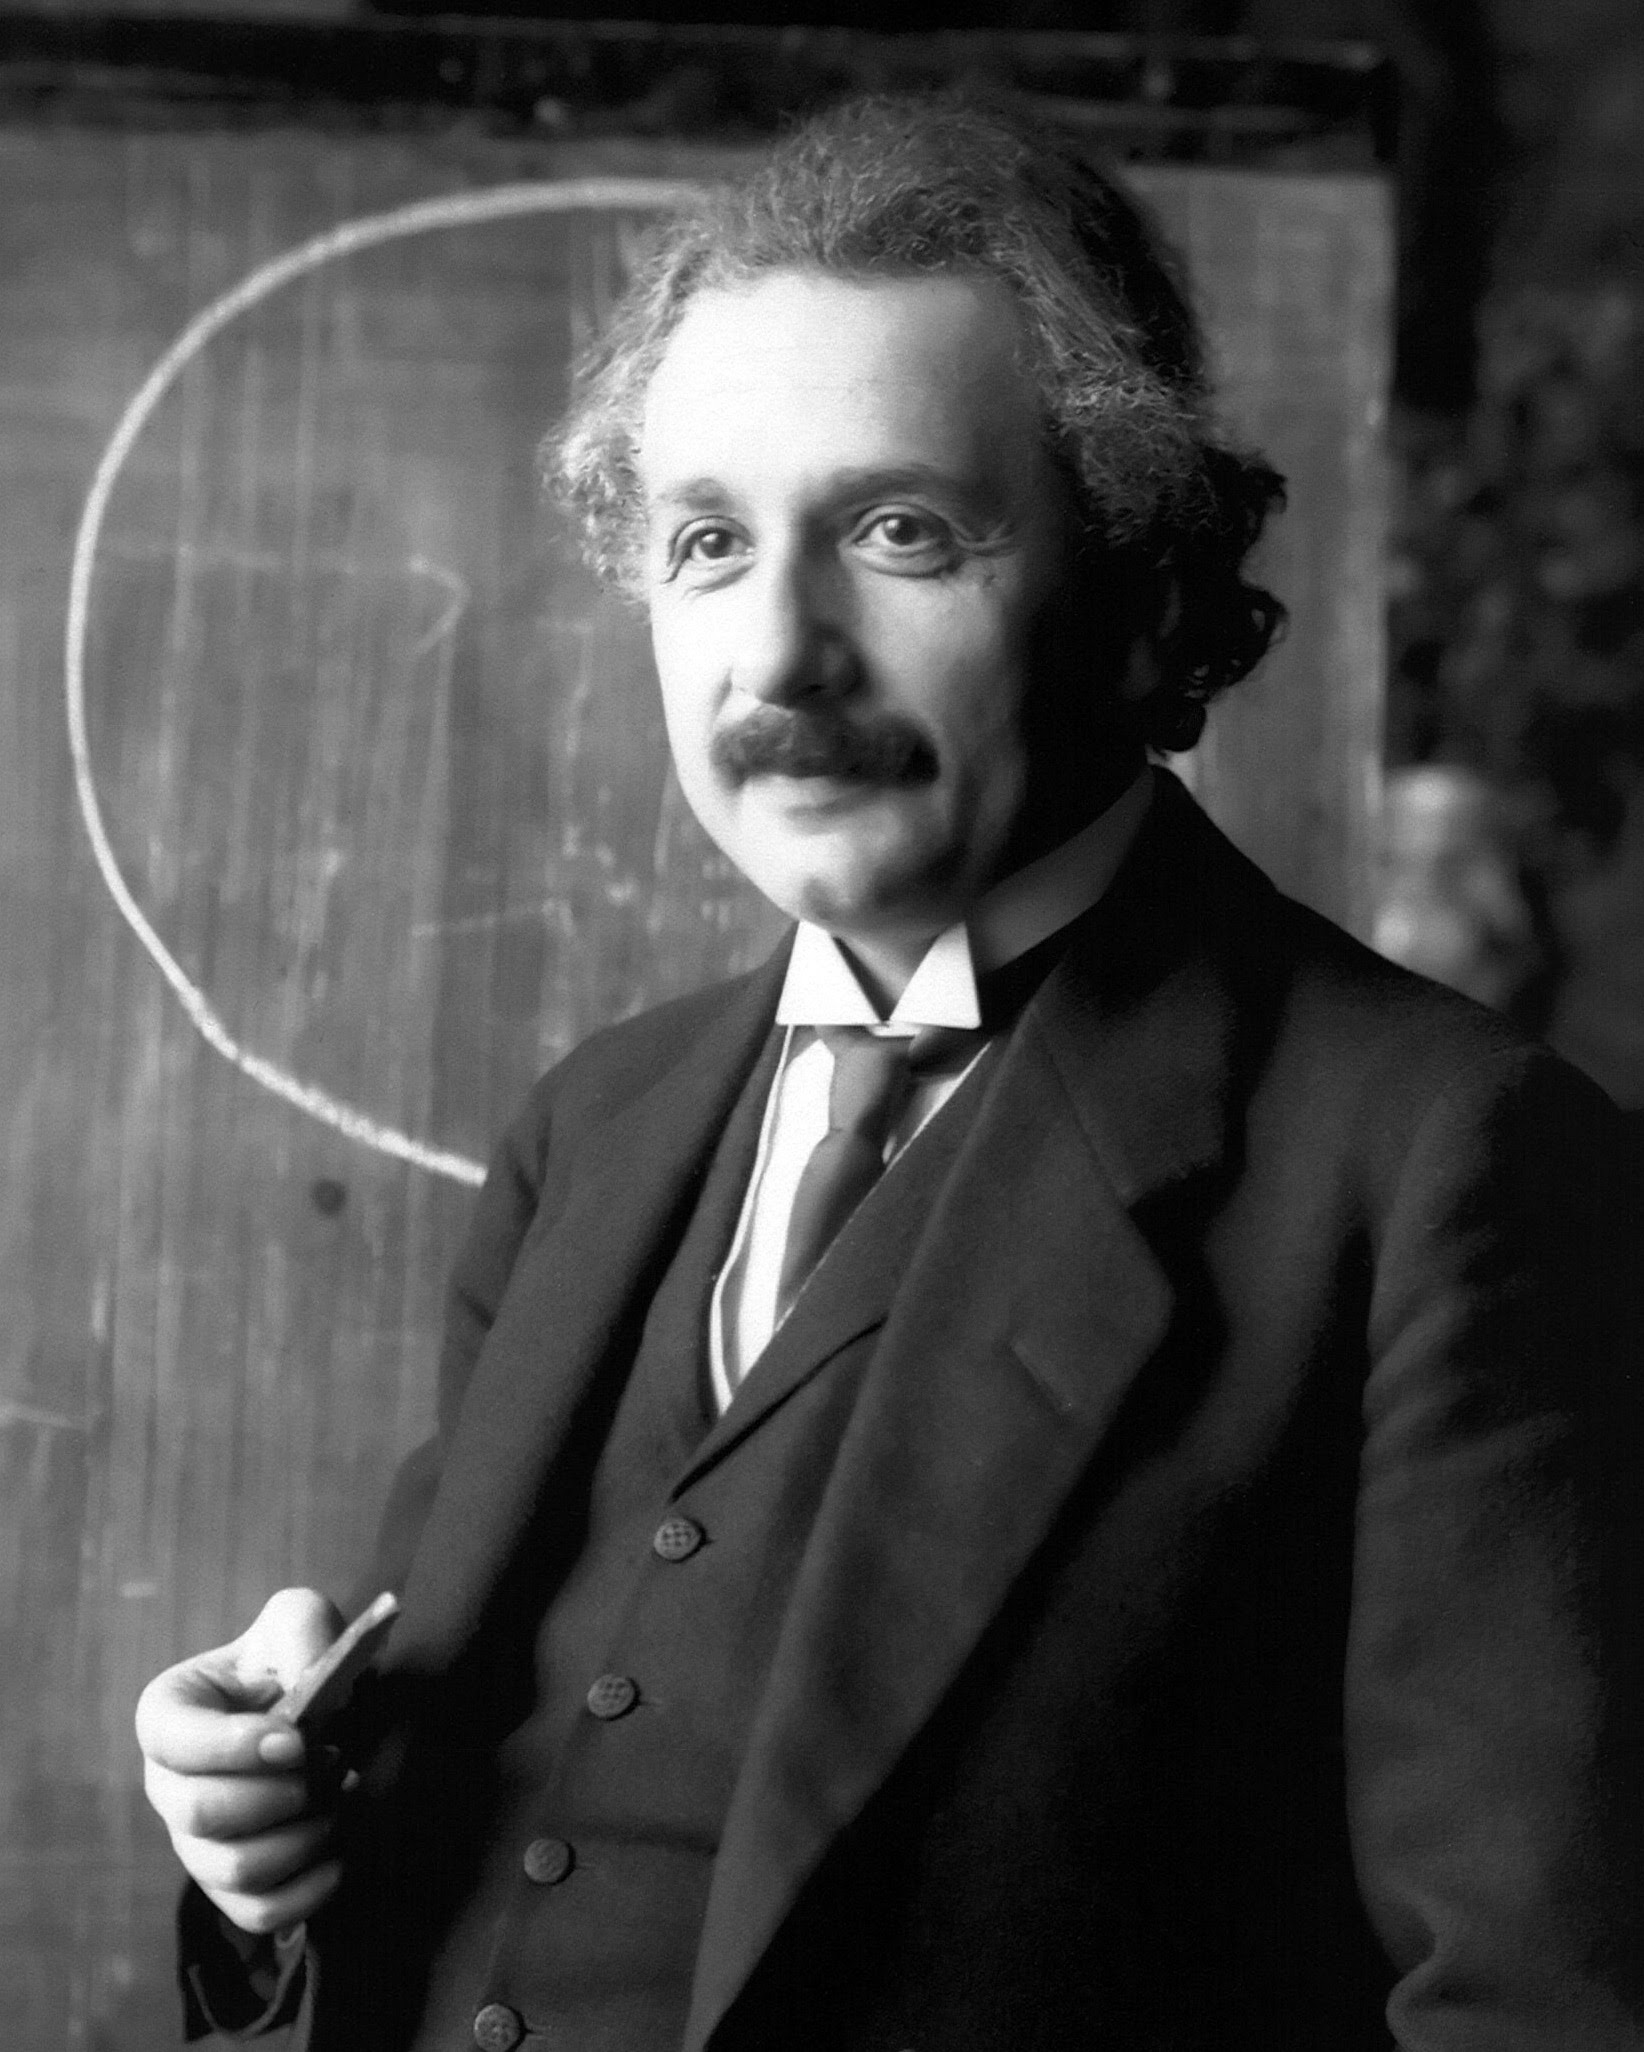 http://upload.wikimedia.org/wikipedia/commons/f/f5/Einstein_1921_portrait2.jpg